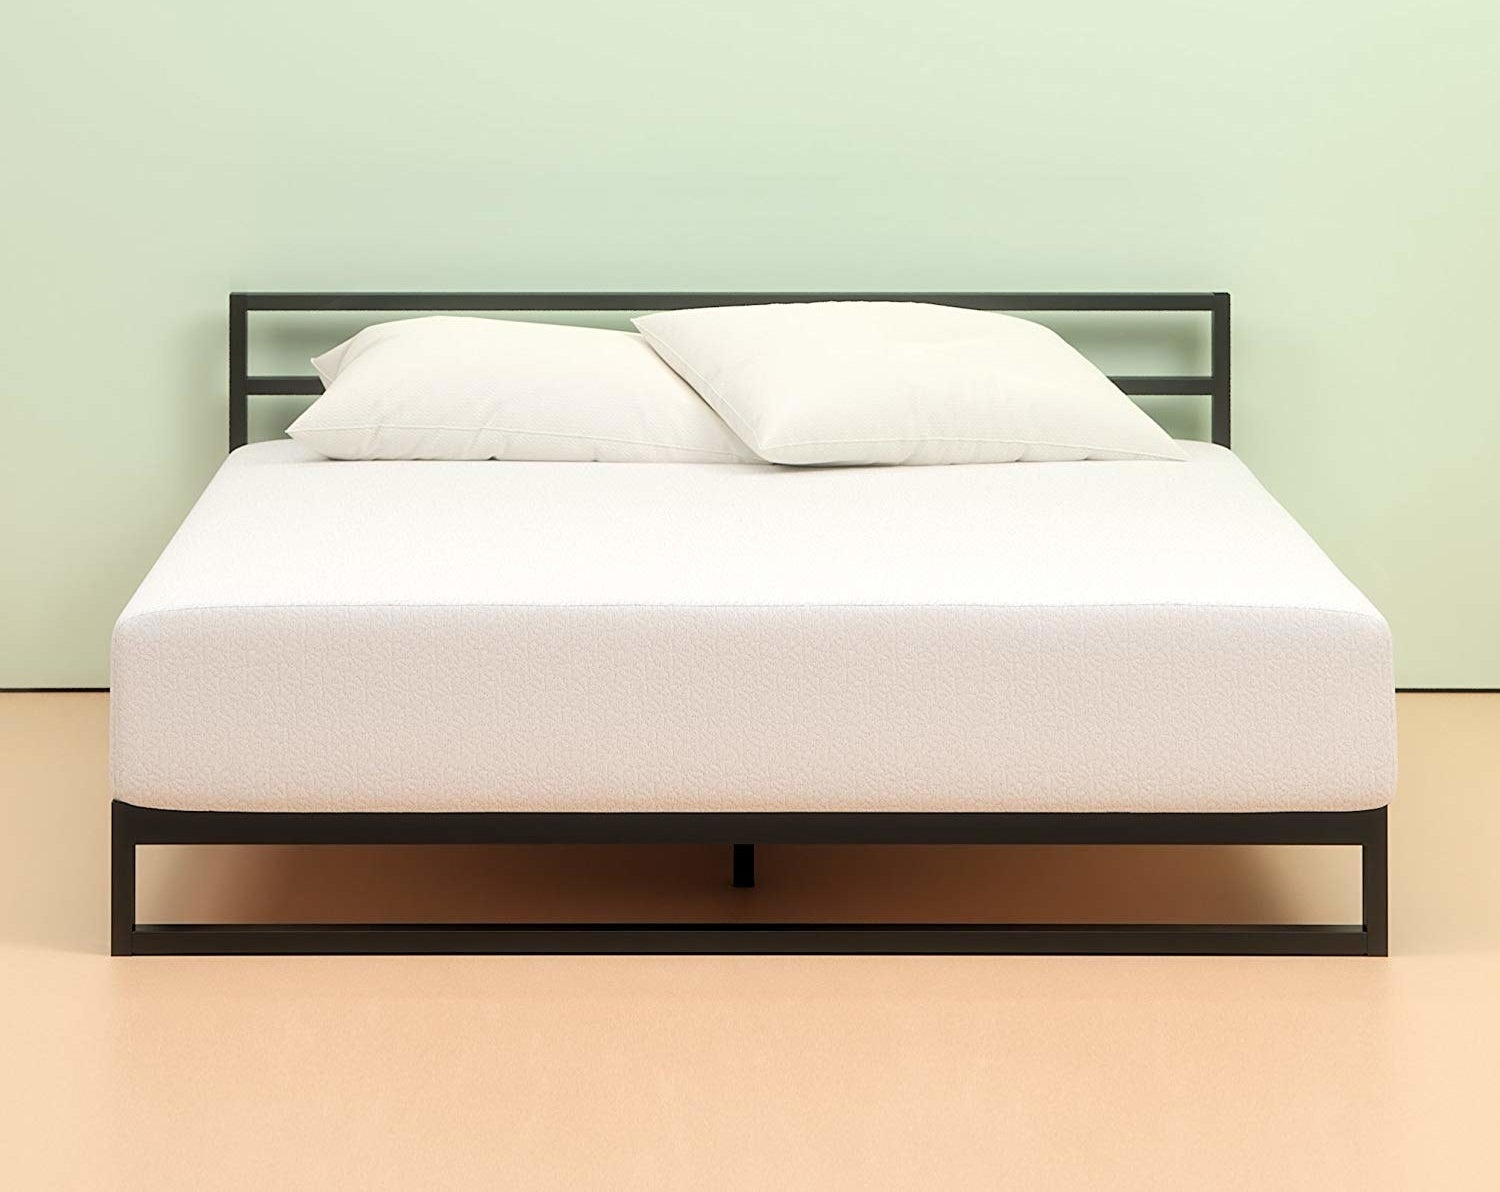 15 Of The Best Mattresses To Buy Online According To Our Readers